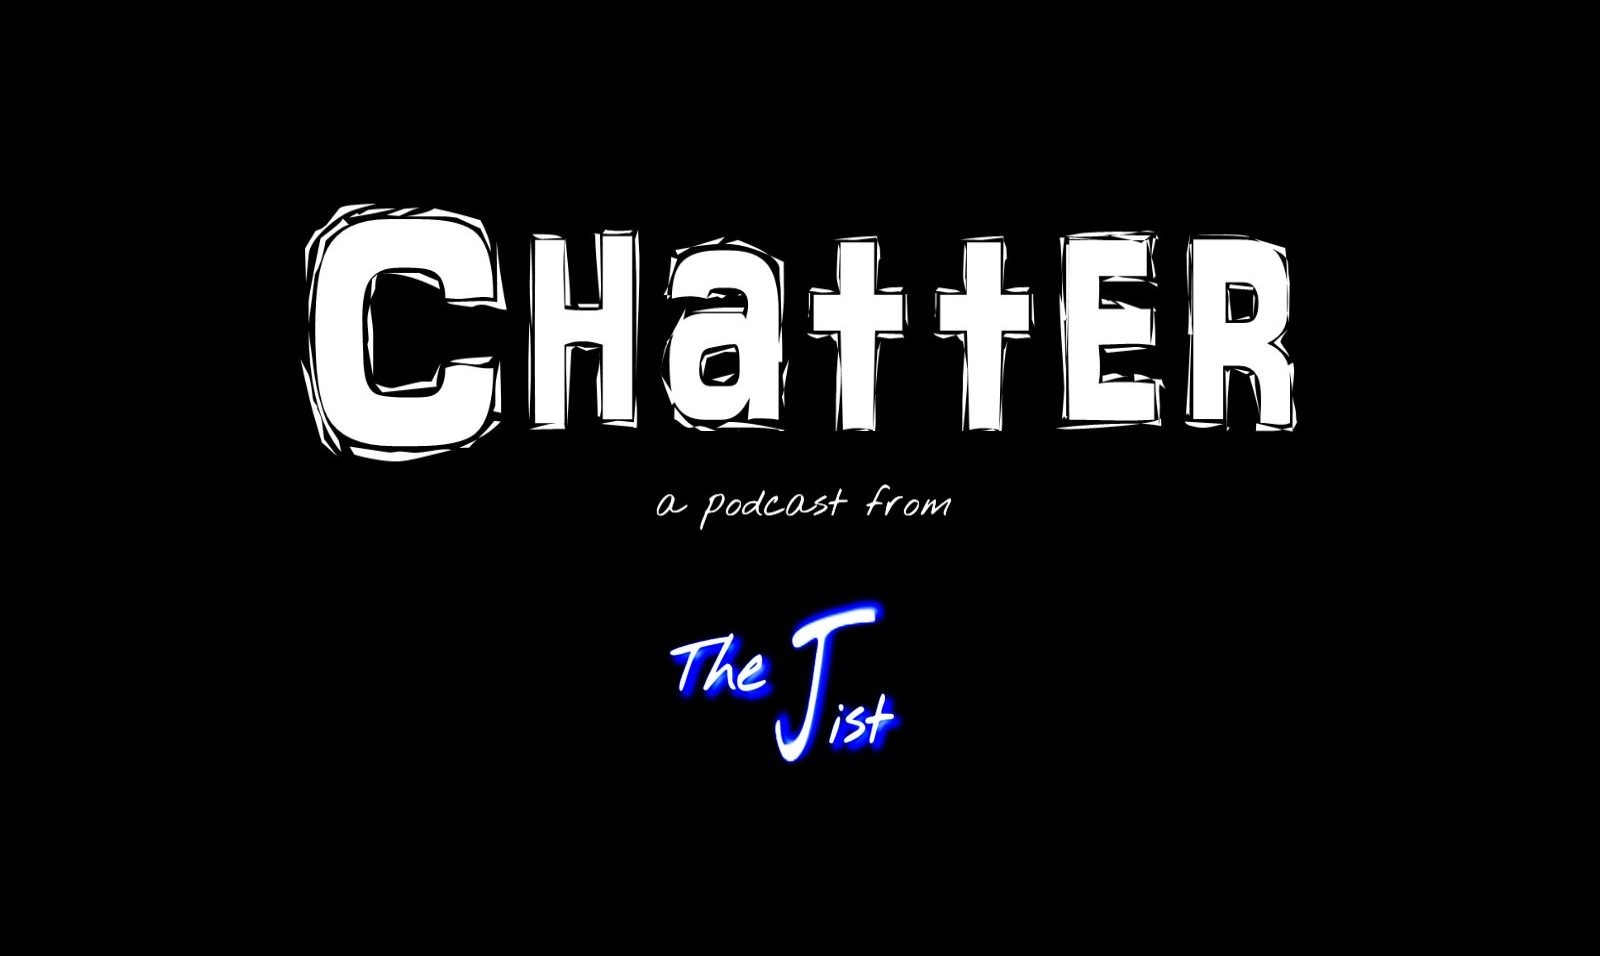 Chatter Episode 44 – Julian Jessop on What We Are Missing in Discussions About a 'No Deal' Brexit